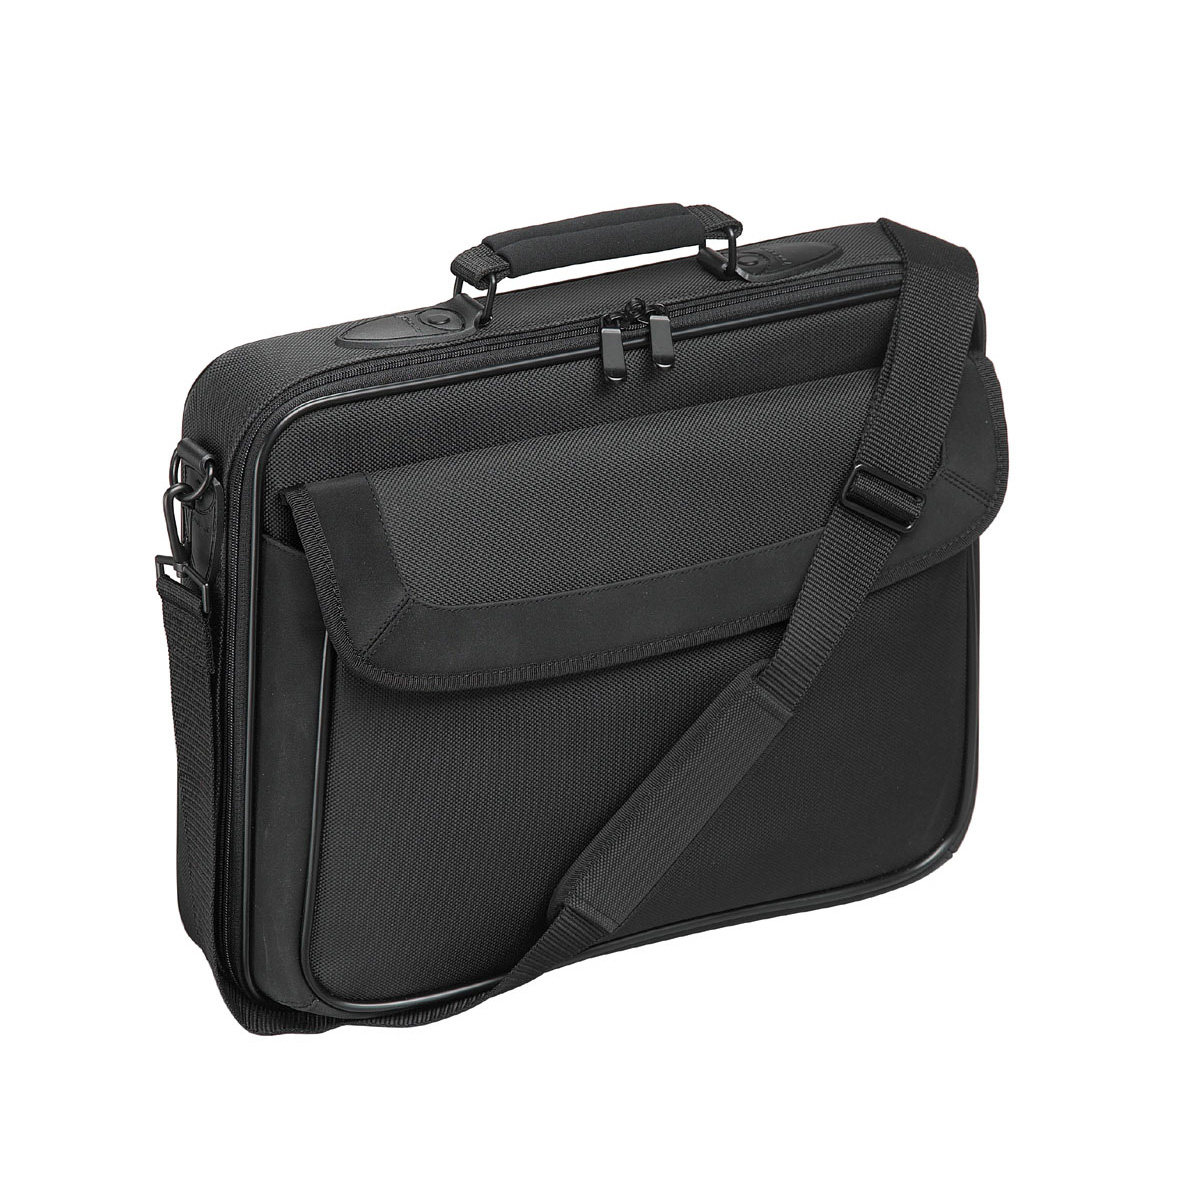 Targus 15-15.6 Clamshell Laptop Case Black, Targus 15-15.6 Clamshell Laptop Case Black